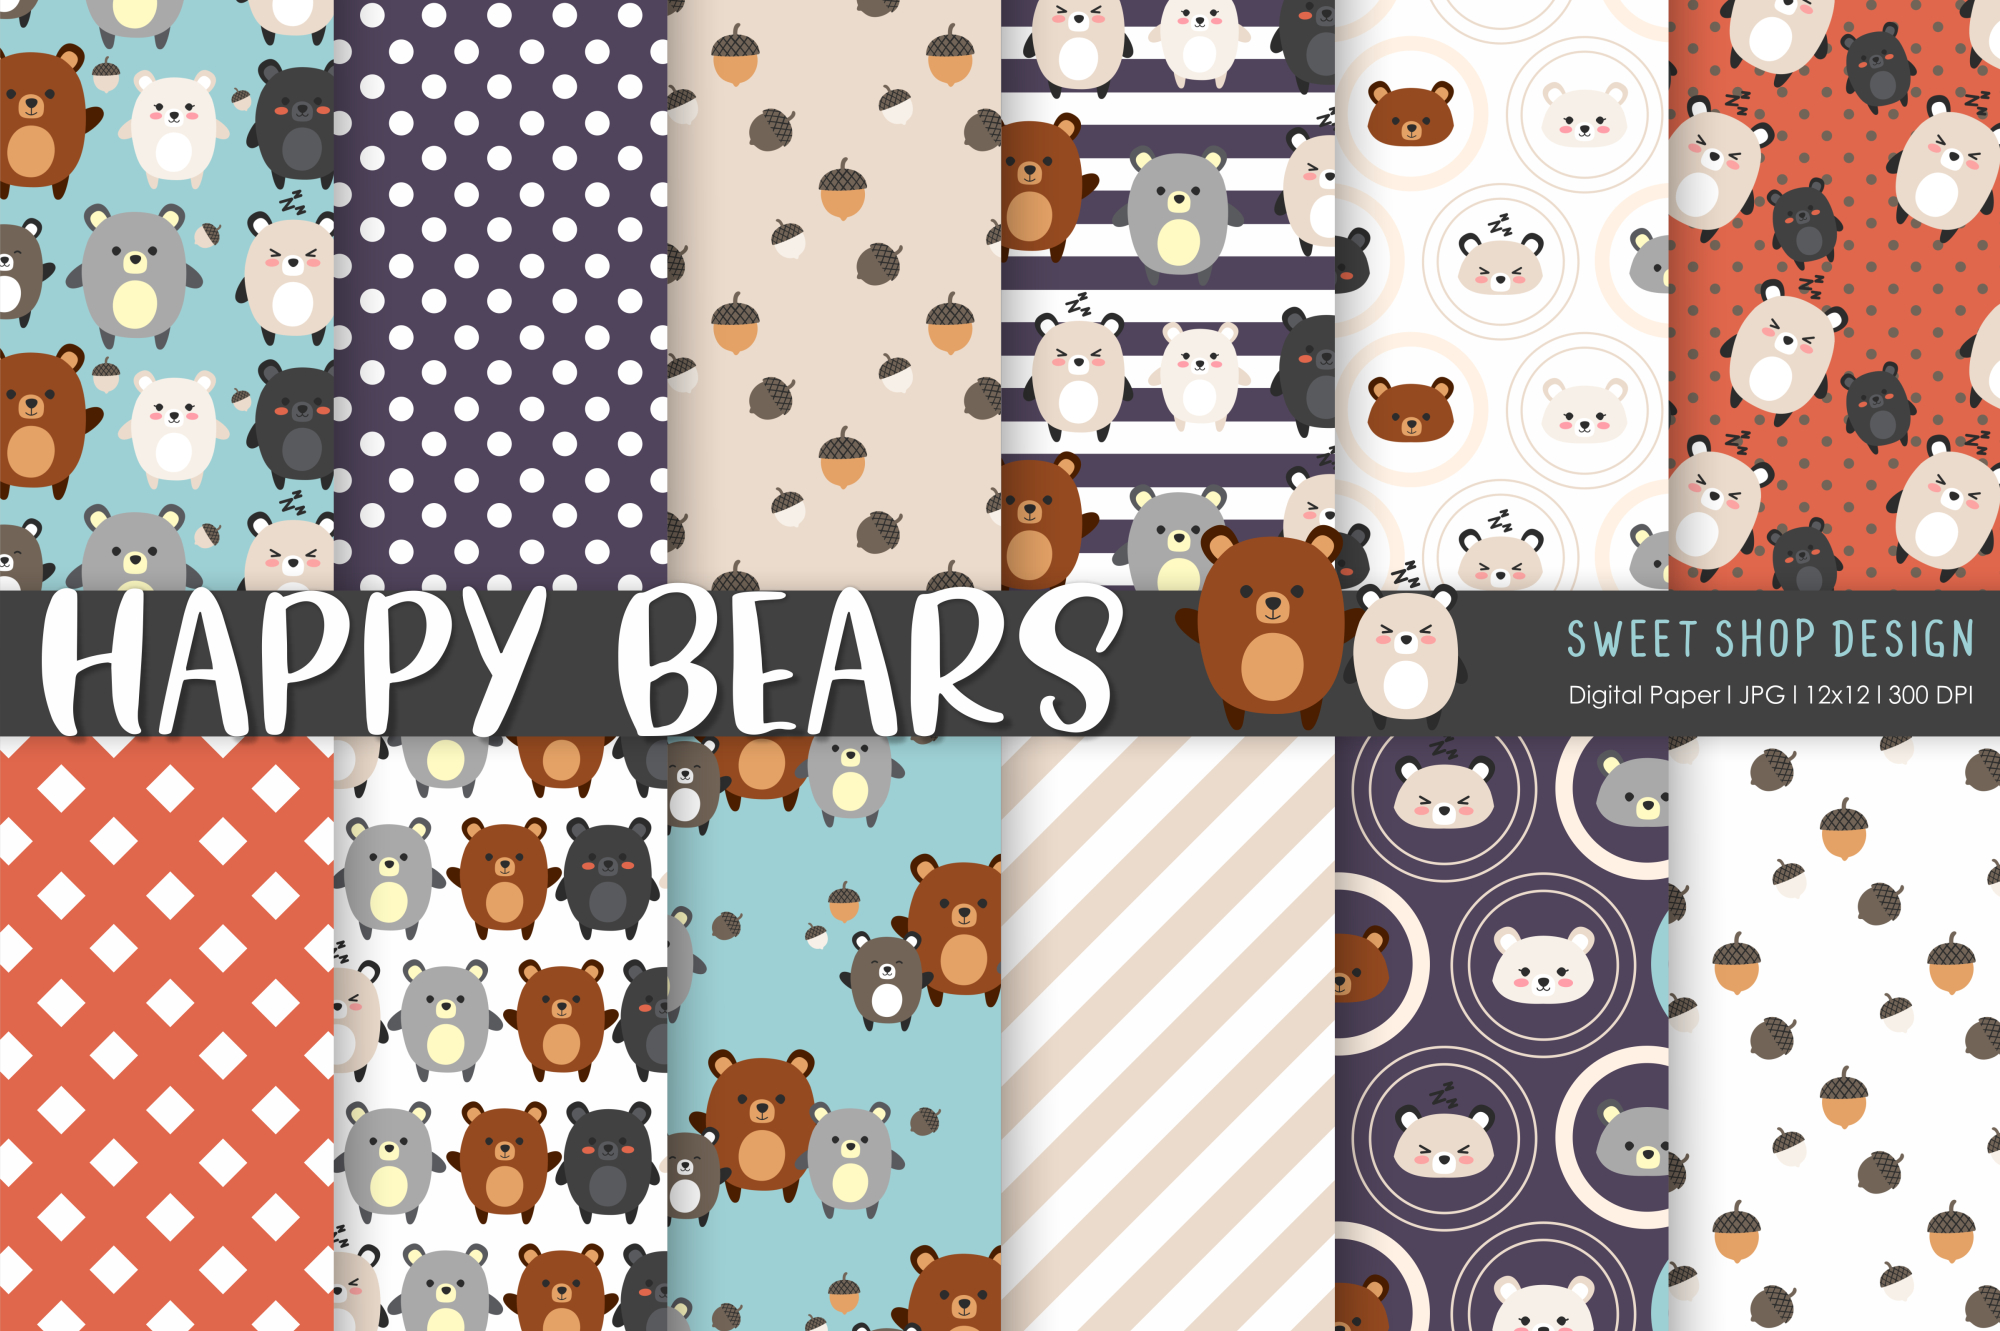 Download Free Digital Paper Happy Bears Graphic By Sweet Shop Design for Cricut Explore, Silhouette and other cutting machines.